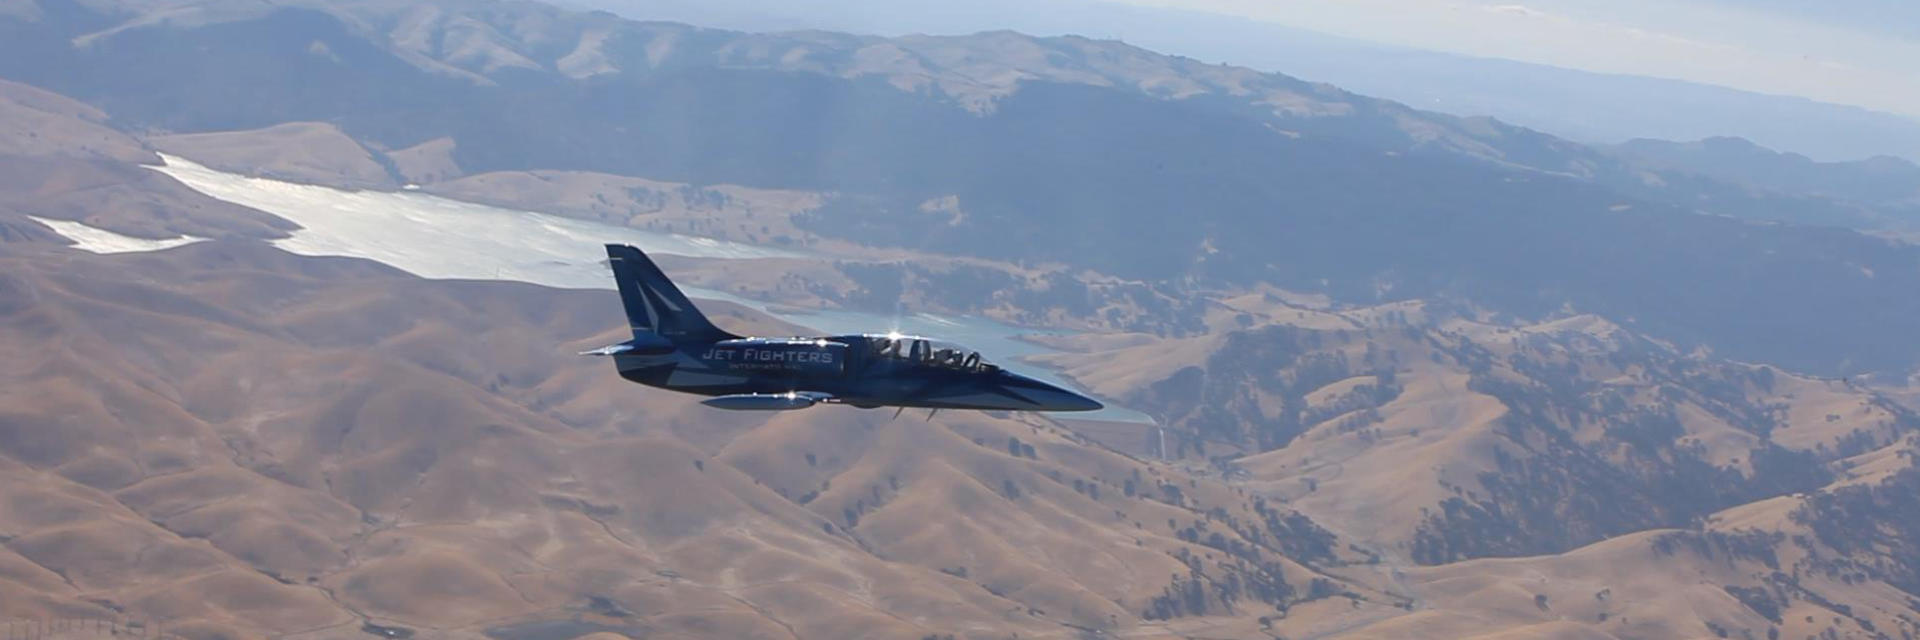 Flying Jet Fighter with Experienced Jet Fighters International Instuctor and Pilot, Florida